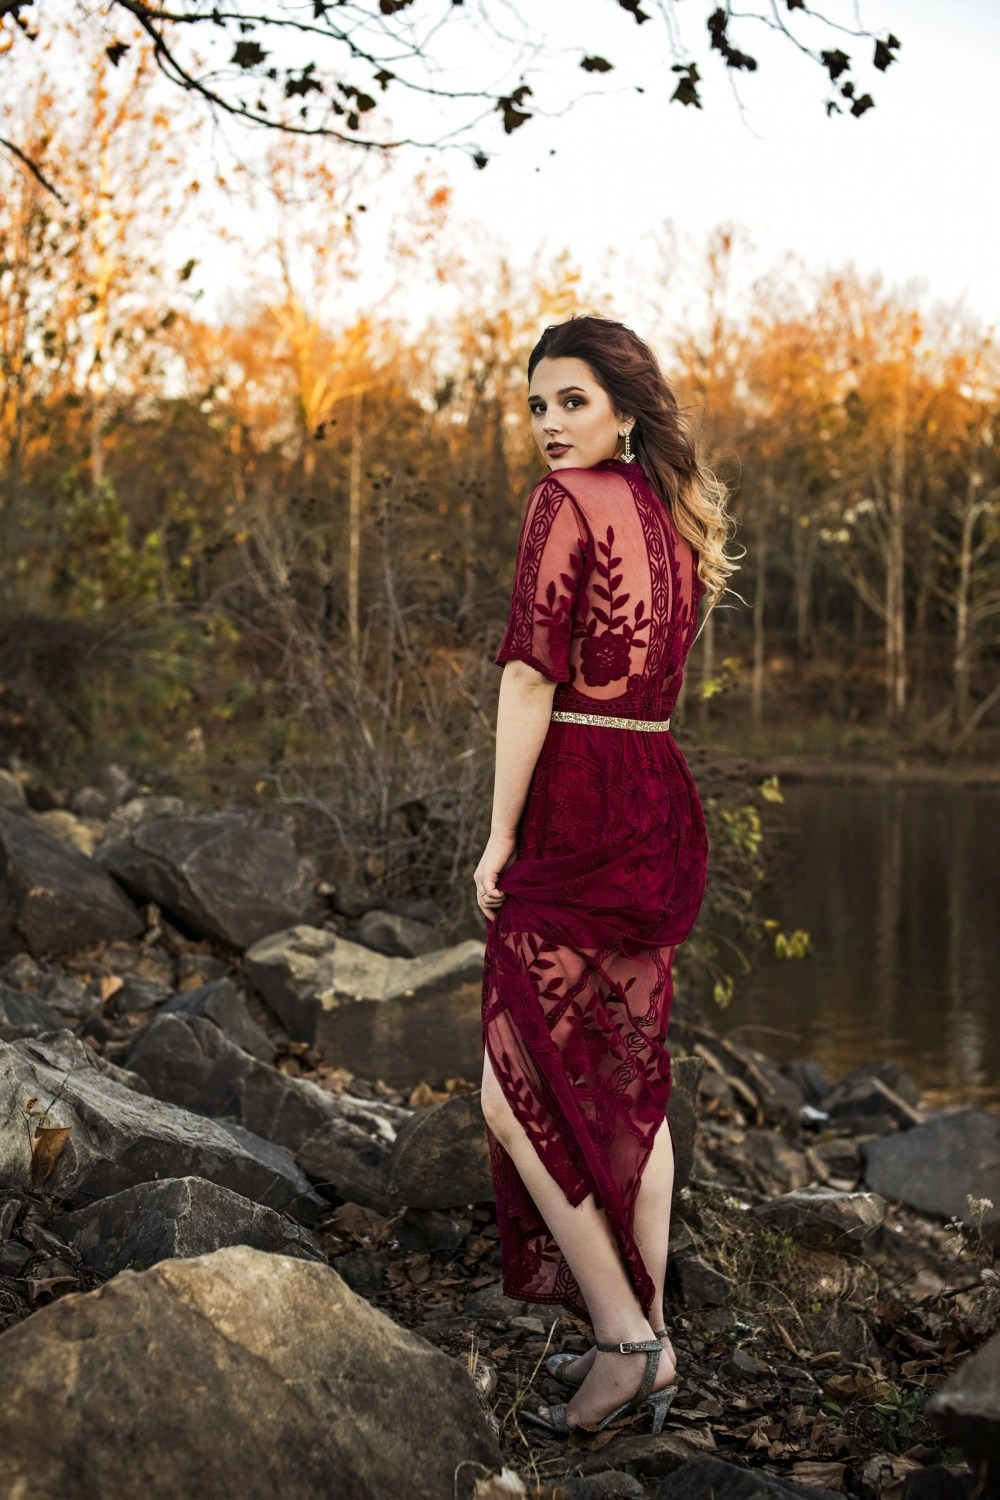 outdoor photography session for senior in red dress by water